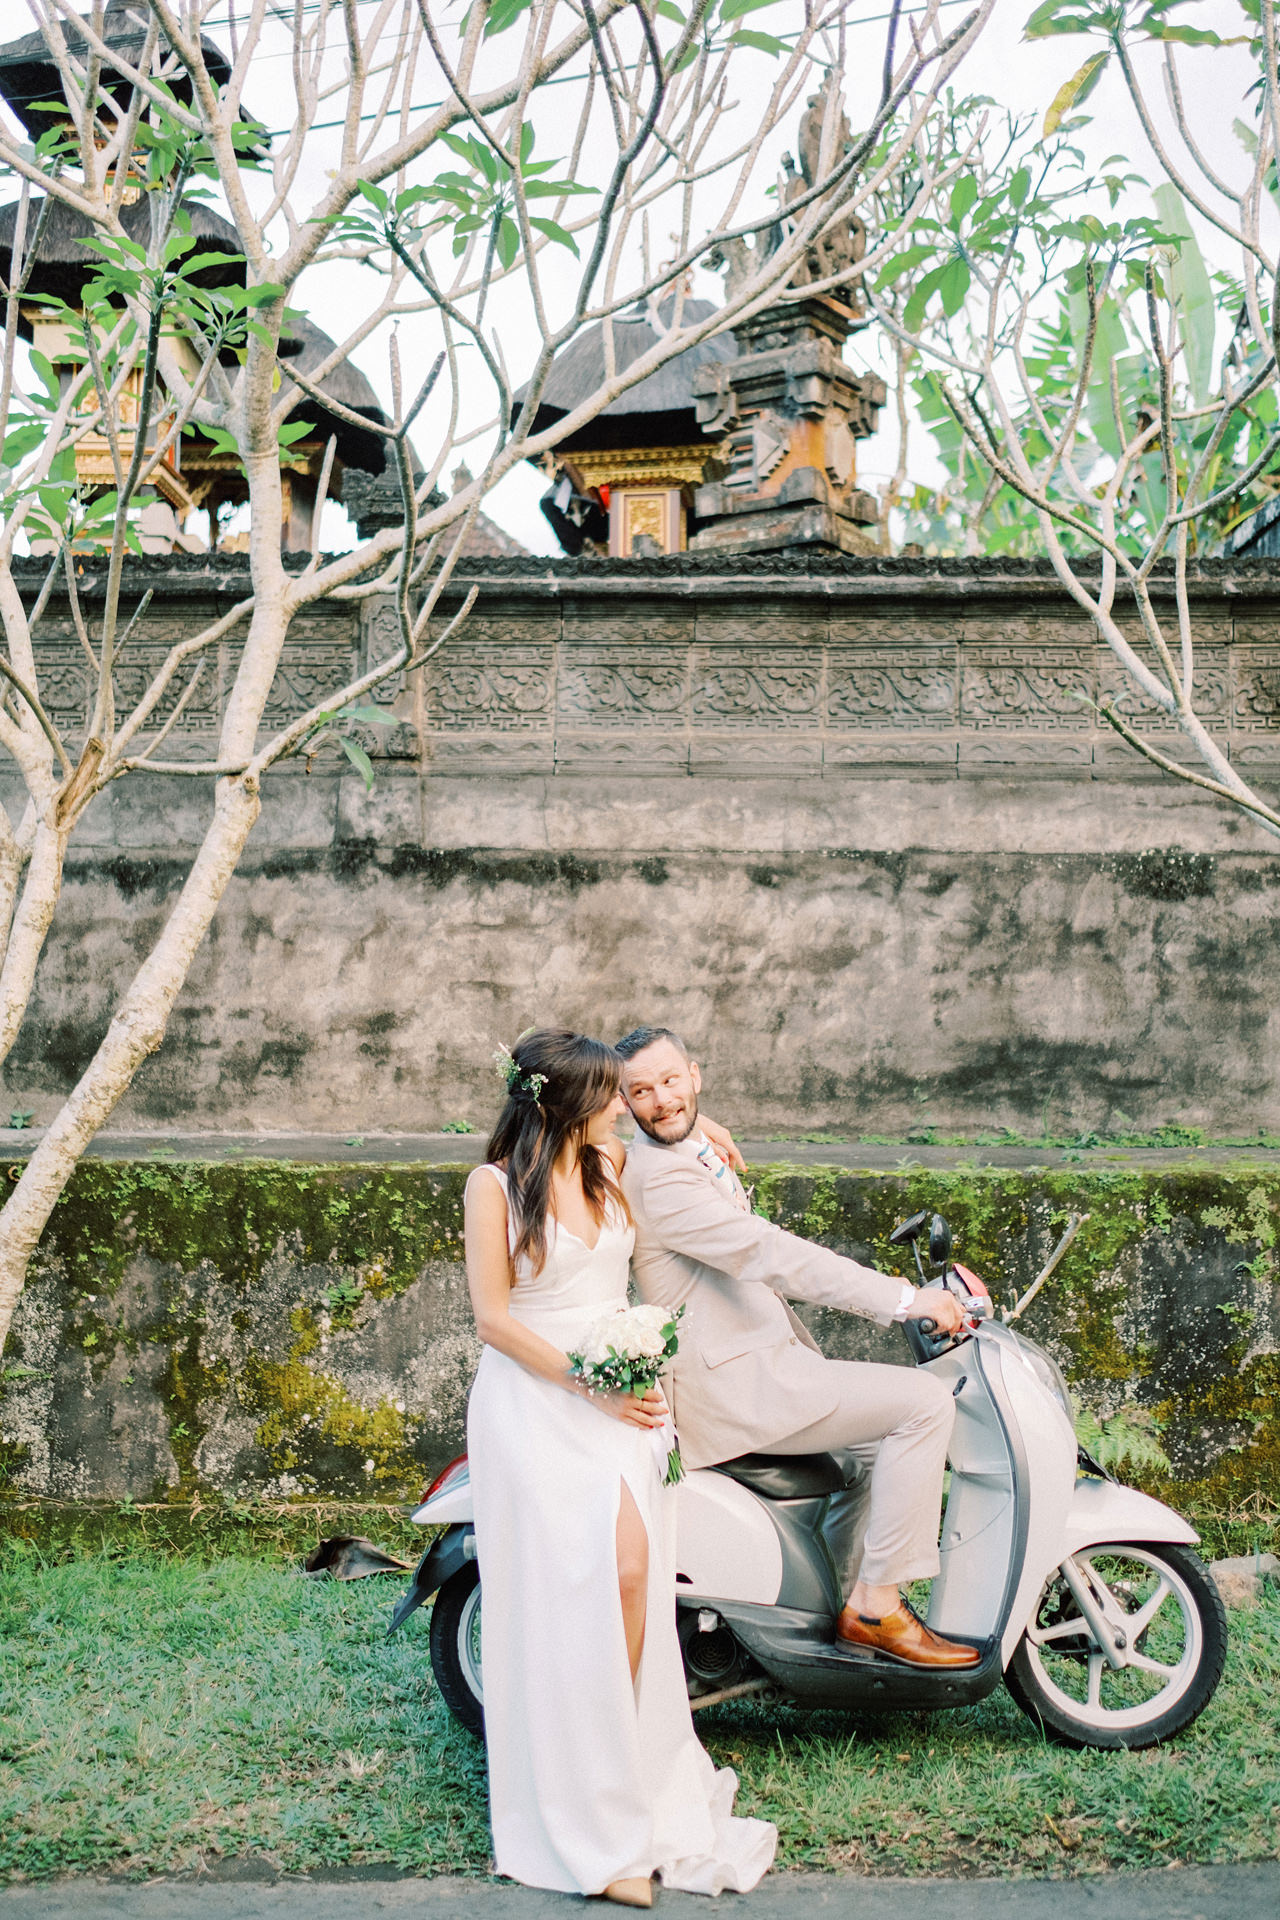 K&R: Greeneries Ubud Wedding - Ubud Wedding Photographer 46